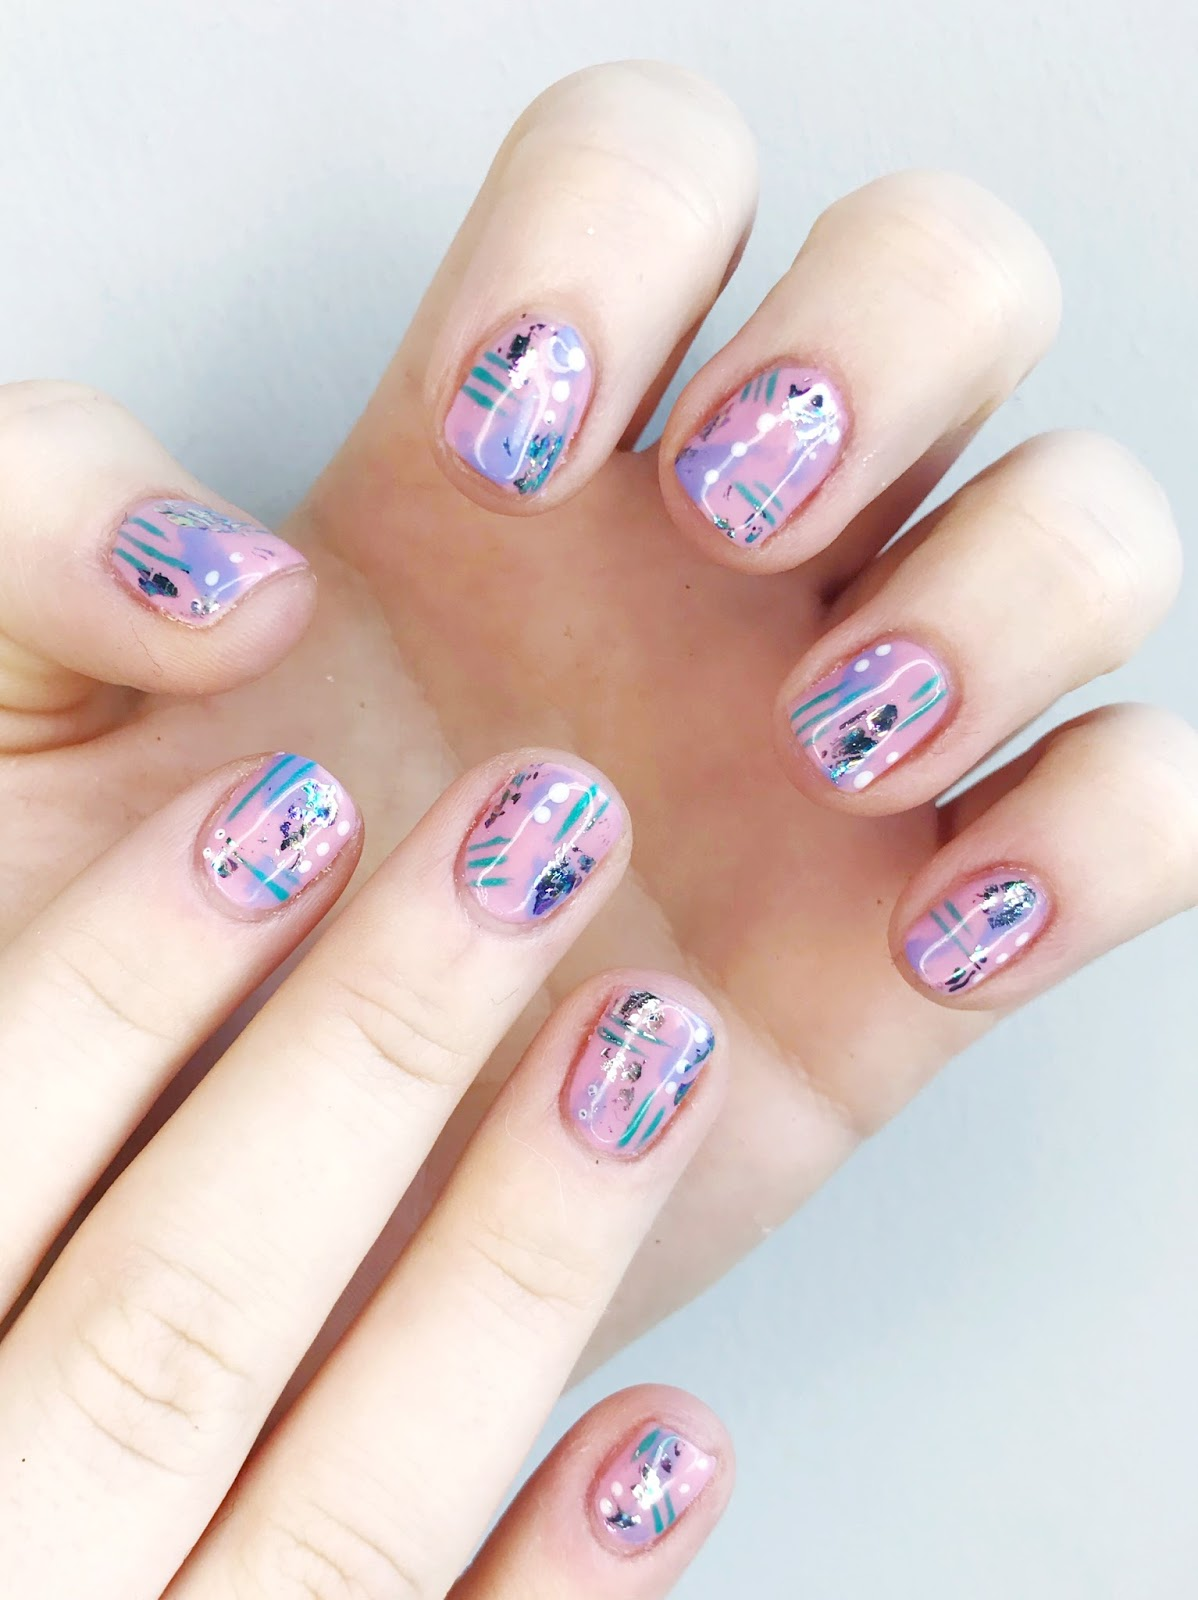 Buff, Edinburgh - The Nail Bar Of My Manicure Dreams | Megan Fife